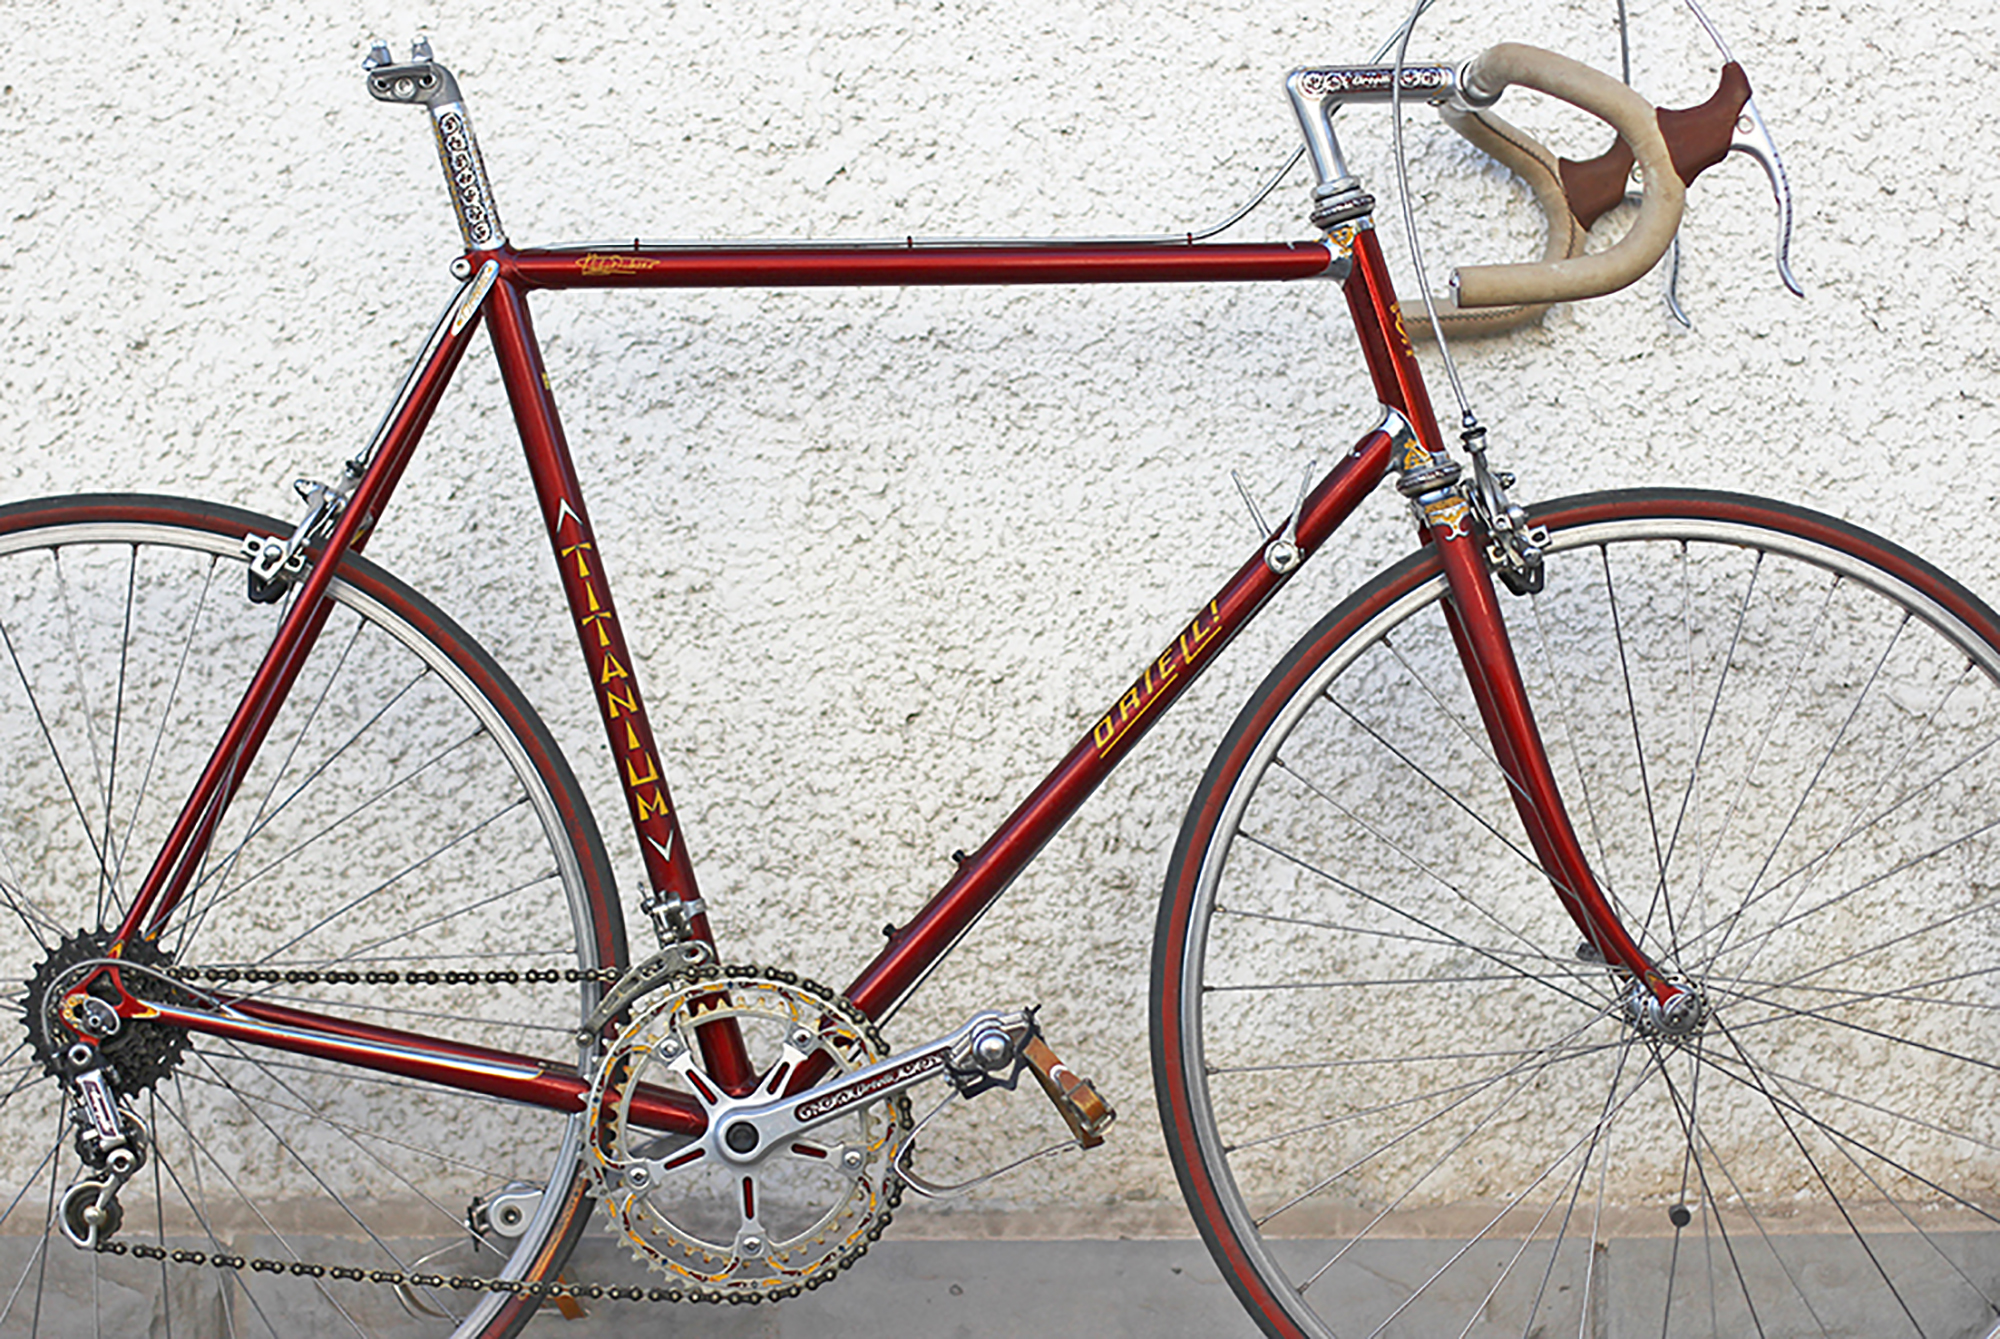 ortelli-1984-road-bike-frame 2